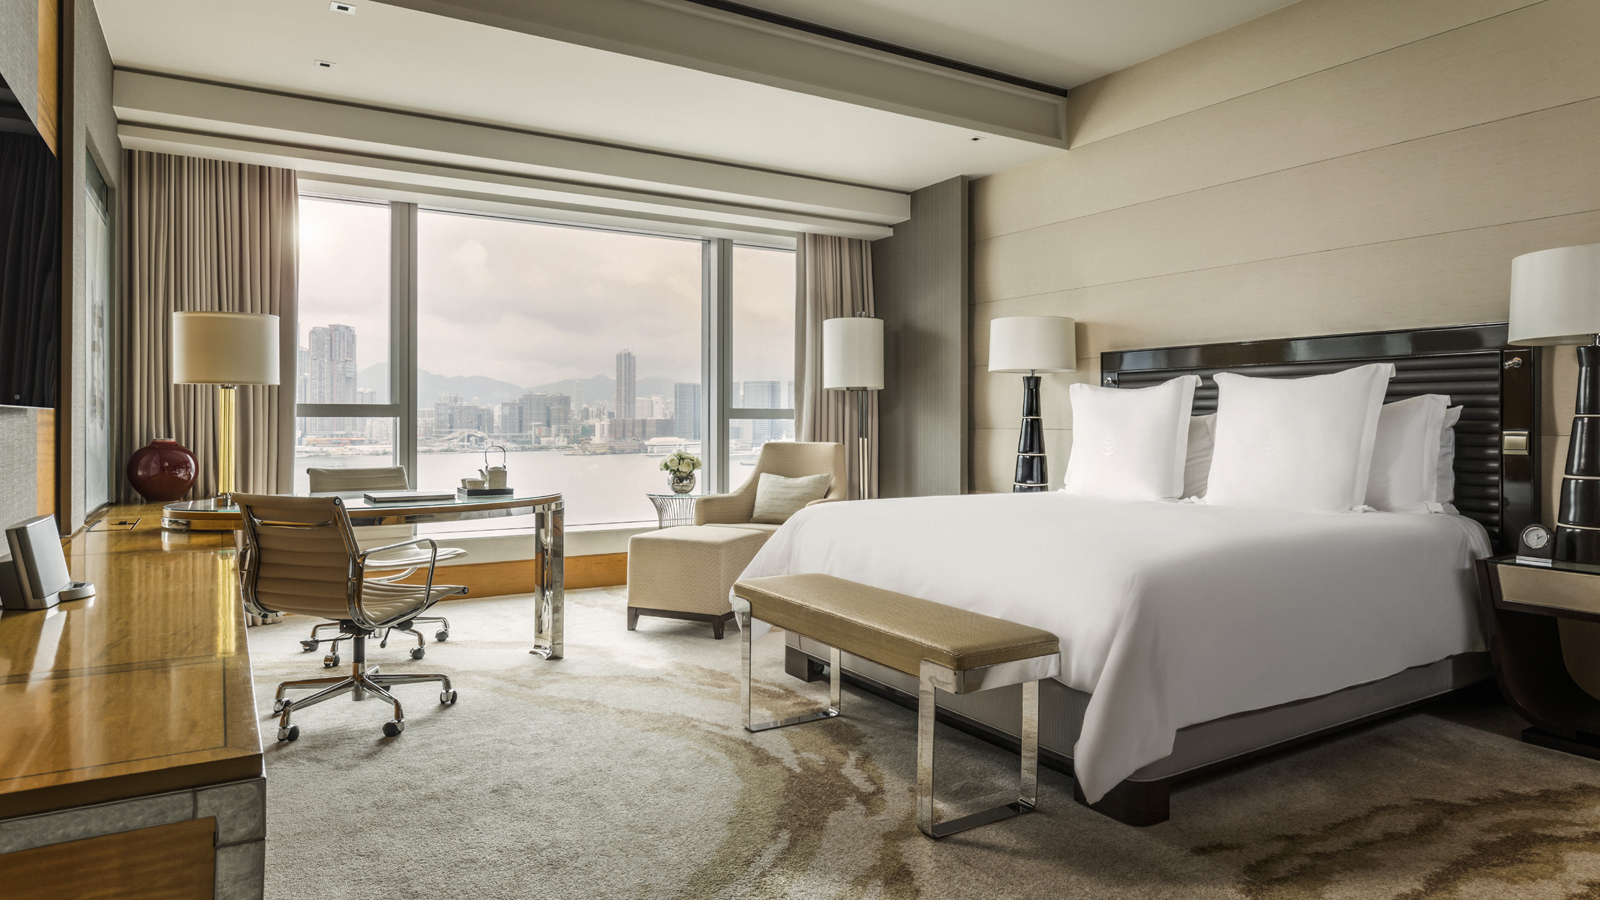 Deluxe Harbour-View Room in Four Seasons Hotel Hong Kong, a Five-Star Hotel in Hong Kong